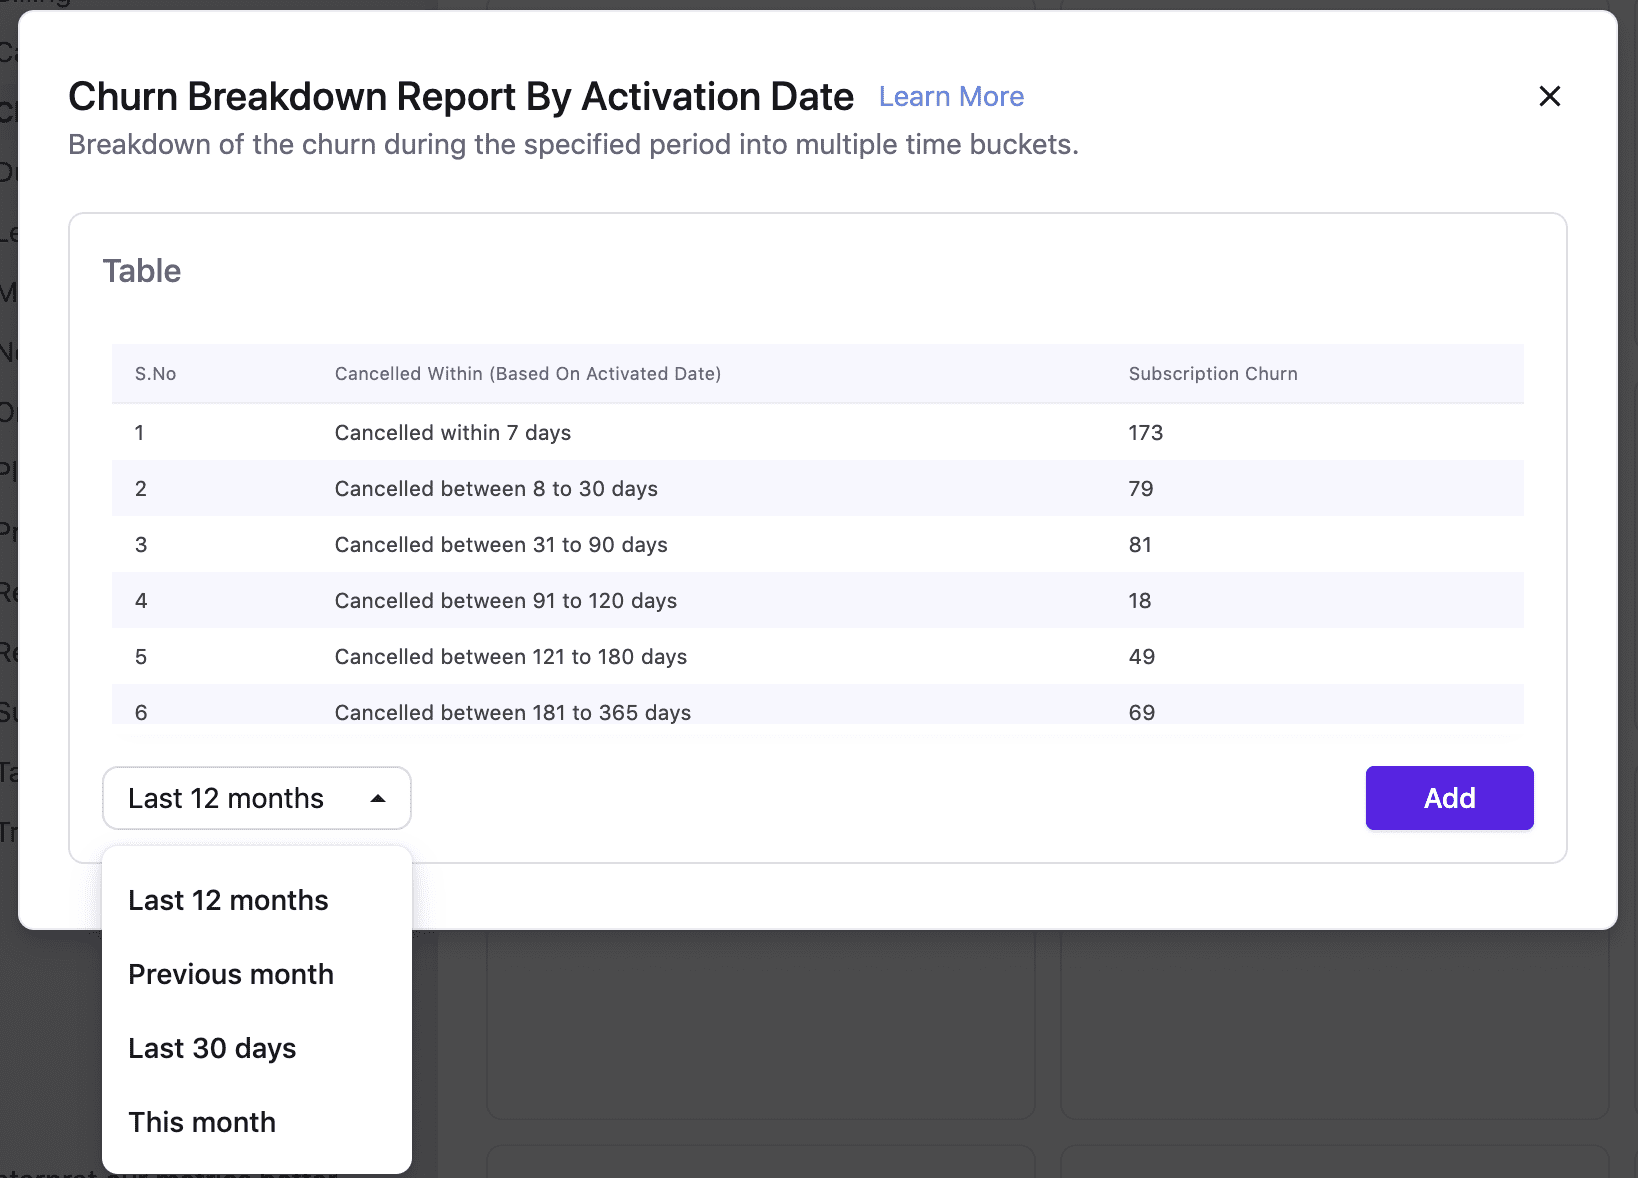 Customer churn report by activation date